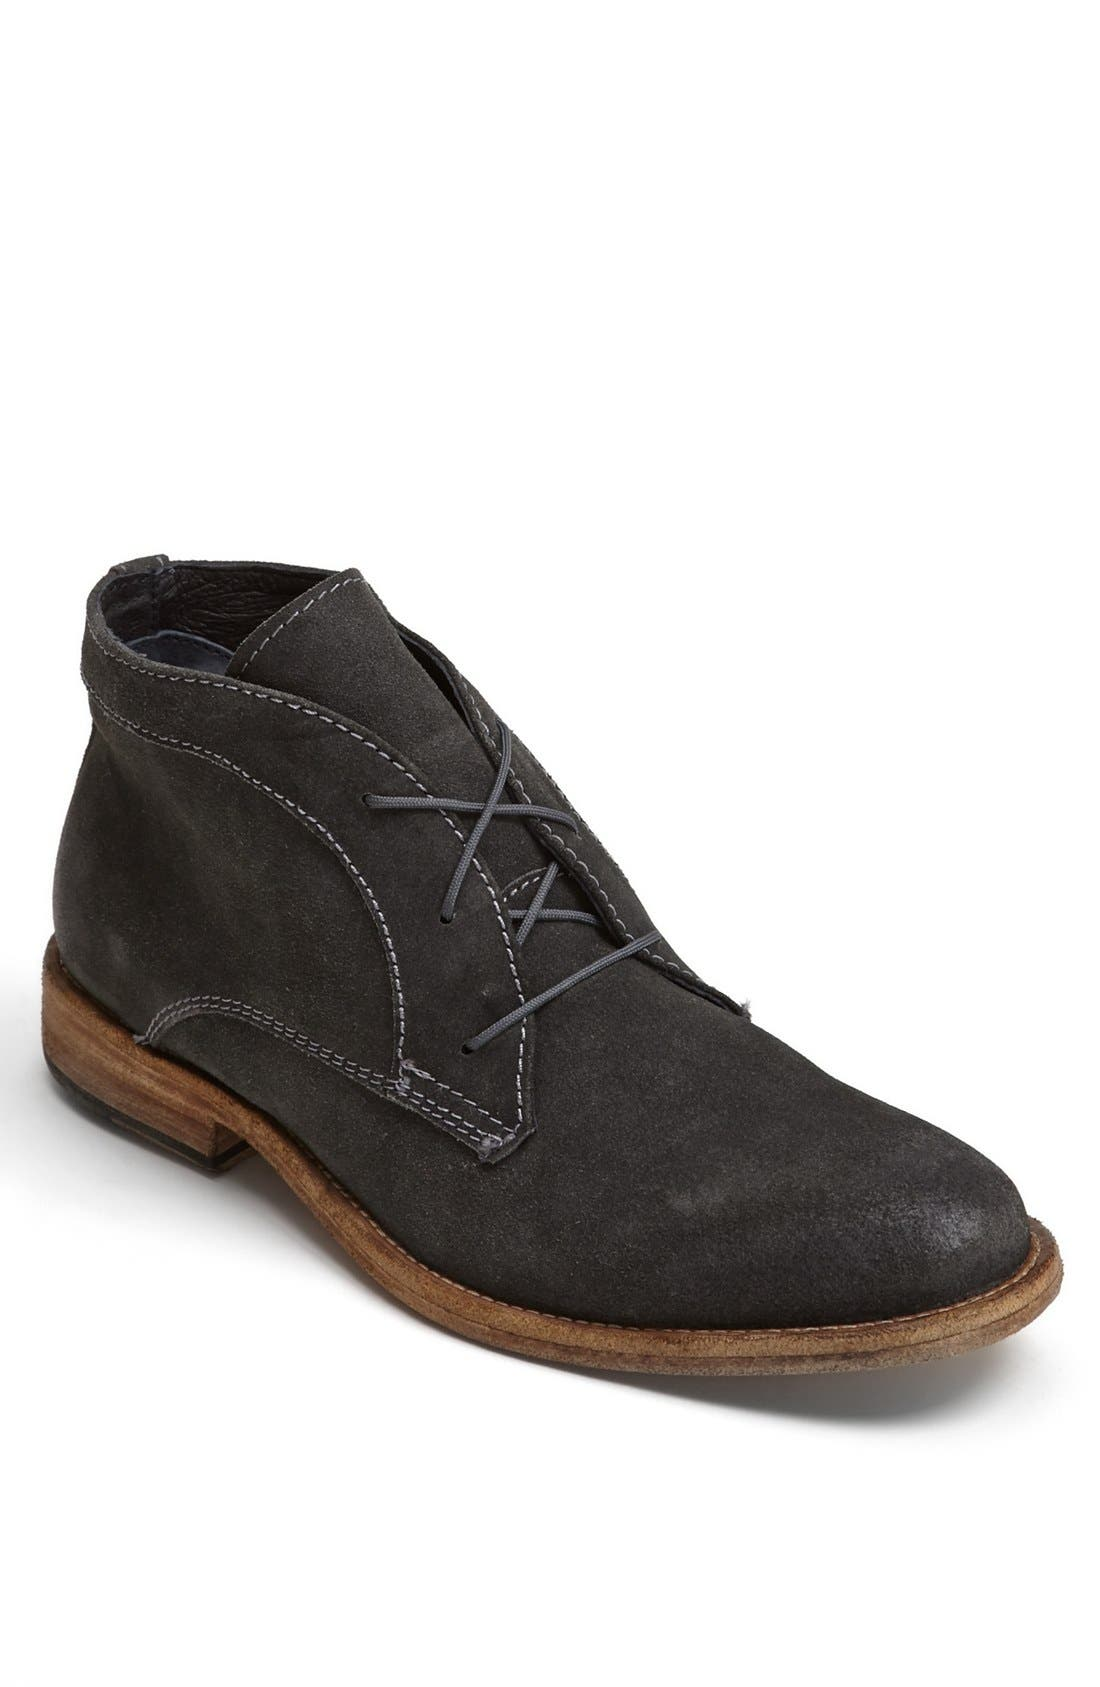 Alternate Image 1 Selected - J.D. Fisk 'Krakow' Chukka Boot (Men)